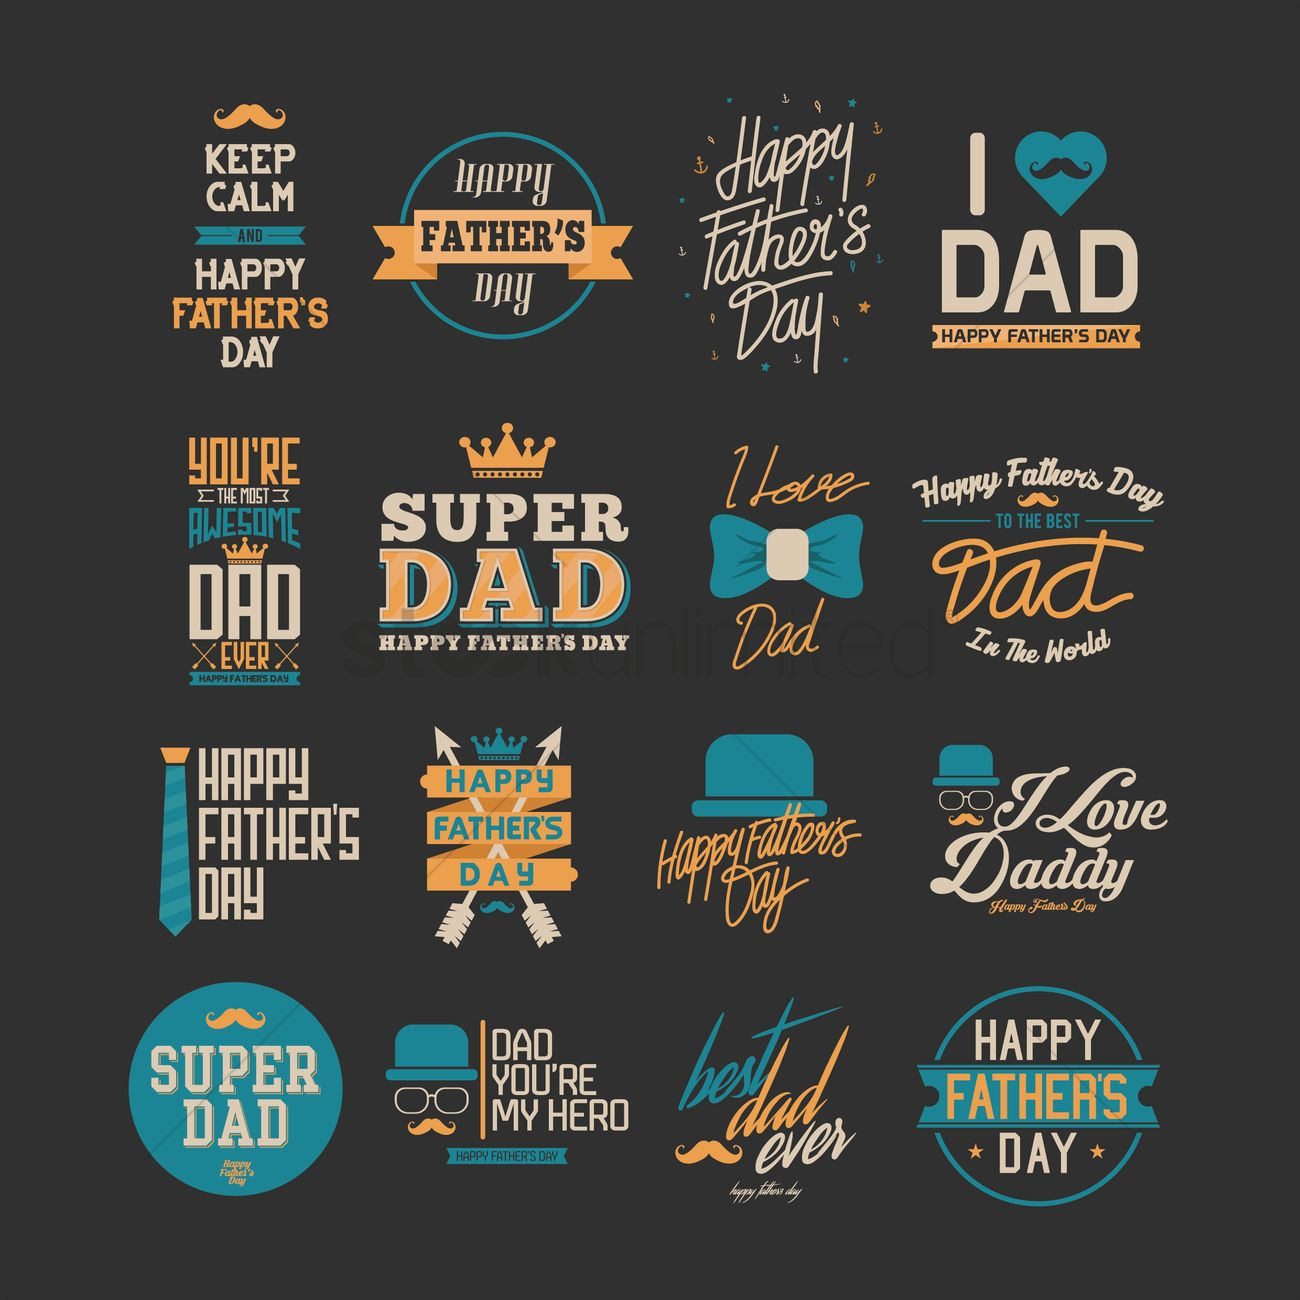 Free collection of fathers day greeting cards vector image free collection of fathers day greeting cards vector graphic m4hsunfo